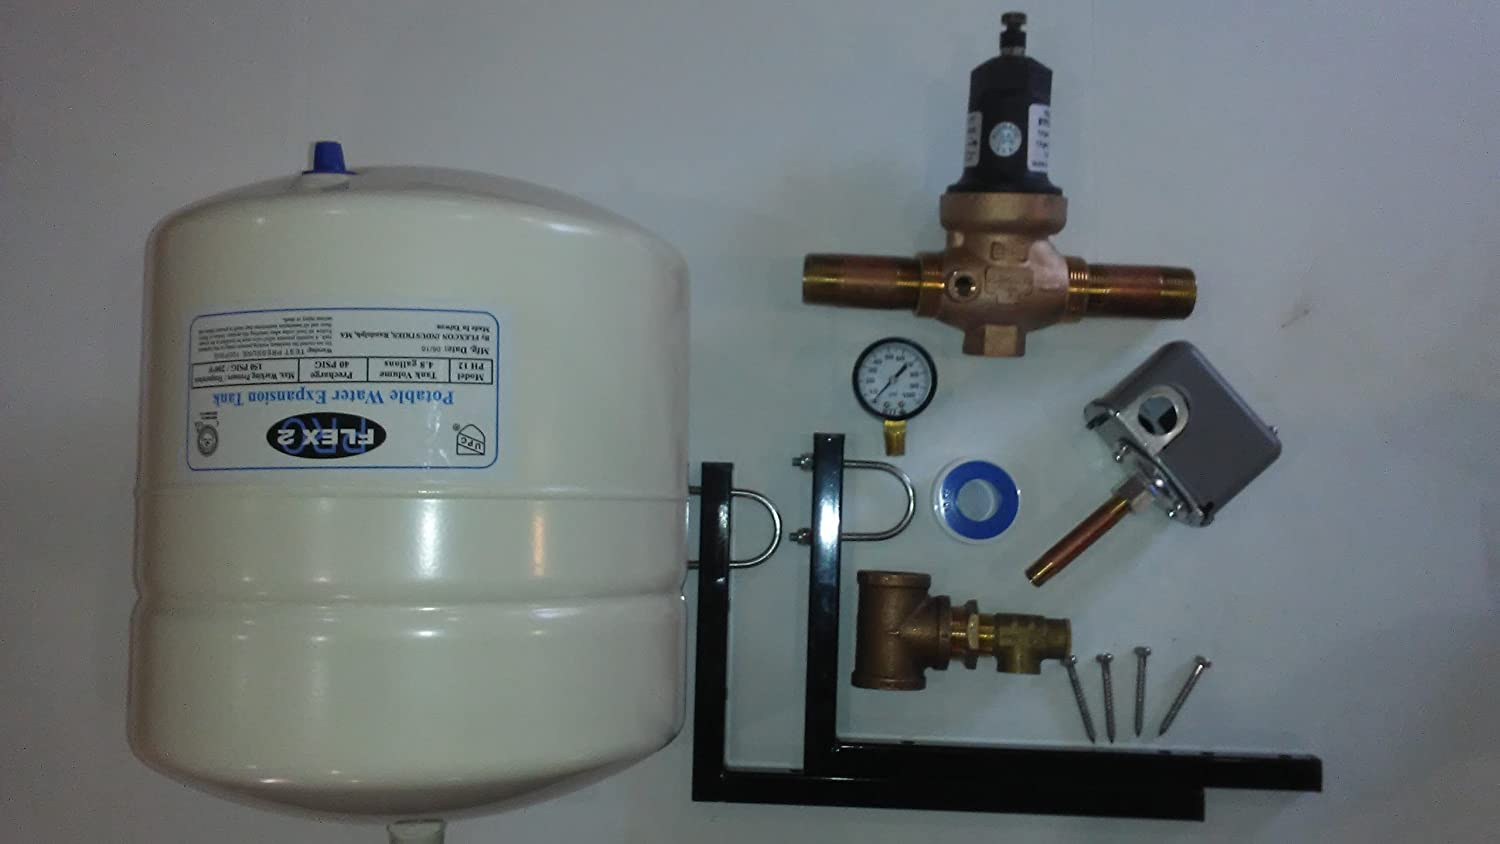 COMPLETE CONSTANT PRESSURE KIT FOR SUBMERSIBLE PUMP CB152ET FLOMATIC CYCLE  GARD IV VALVE 15-150psi 1